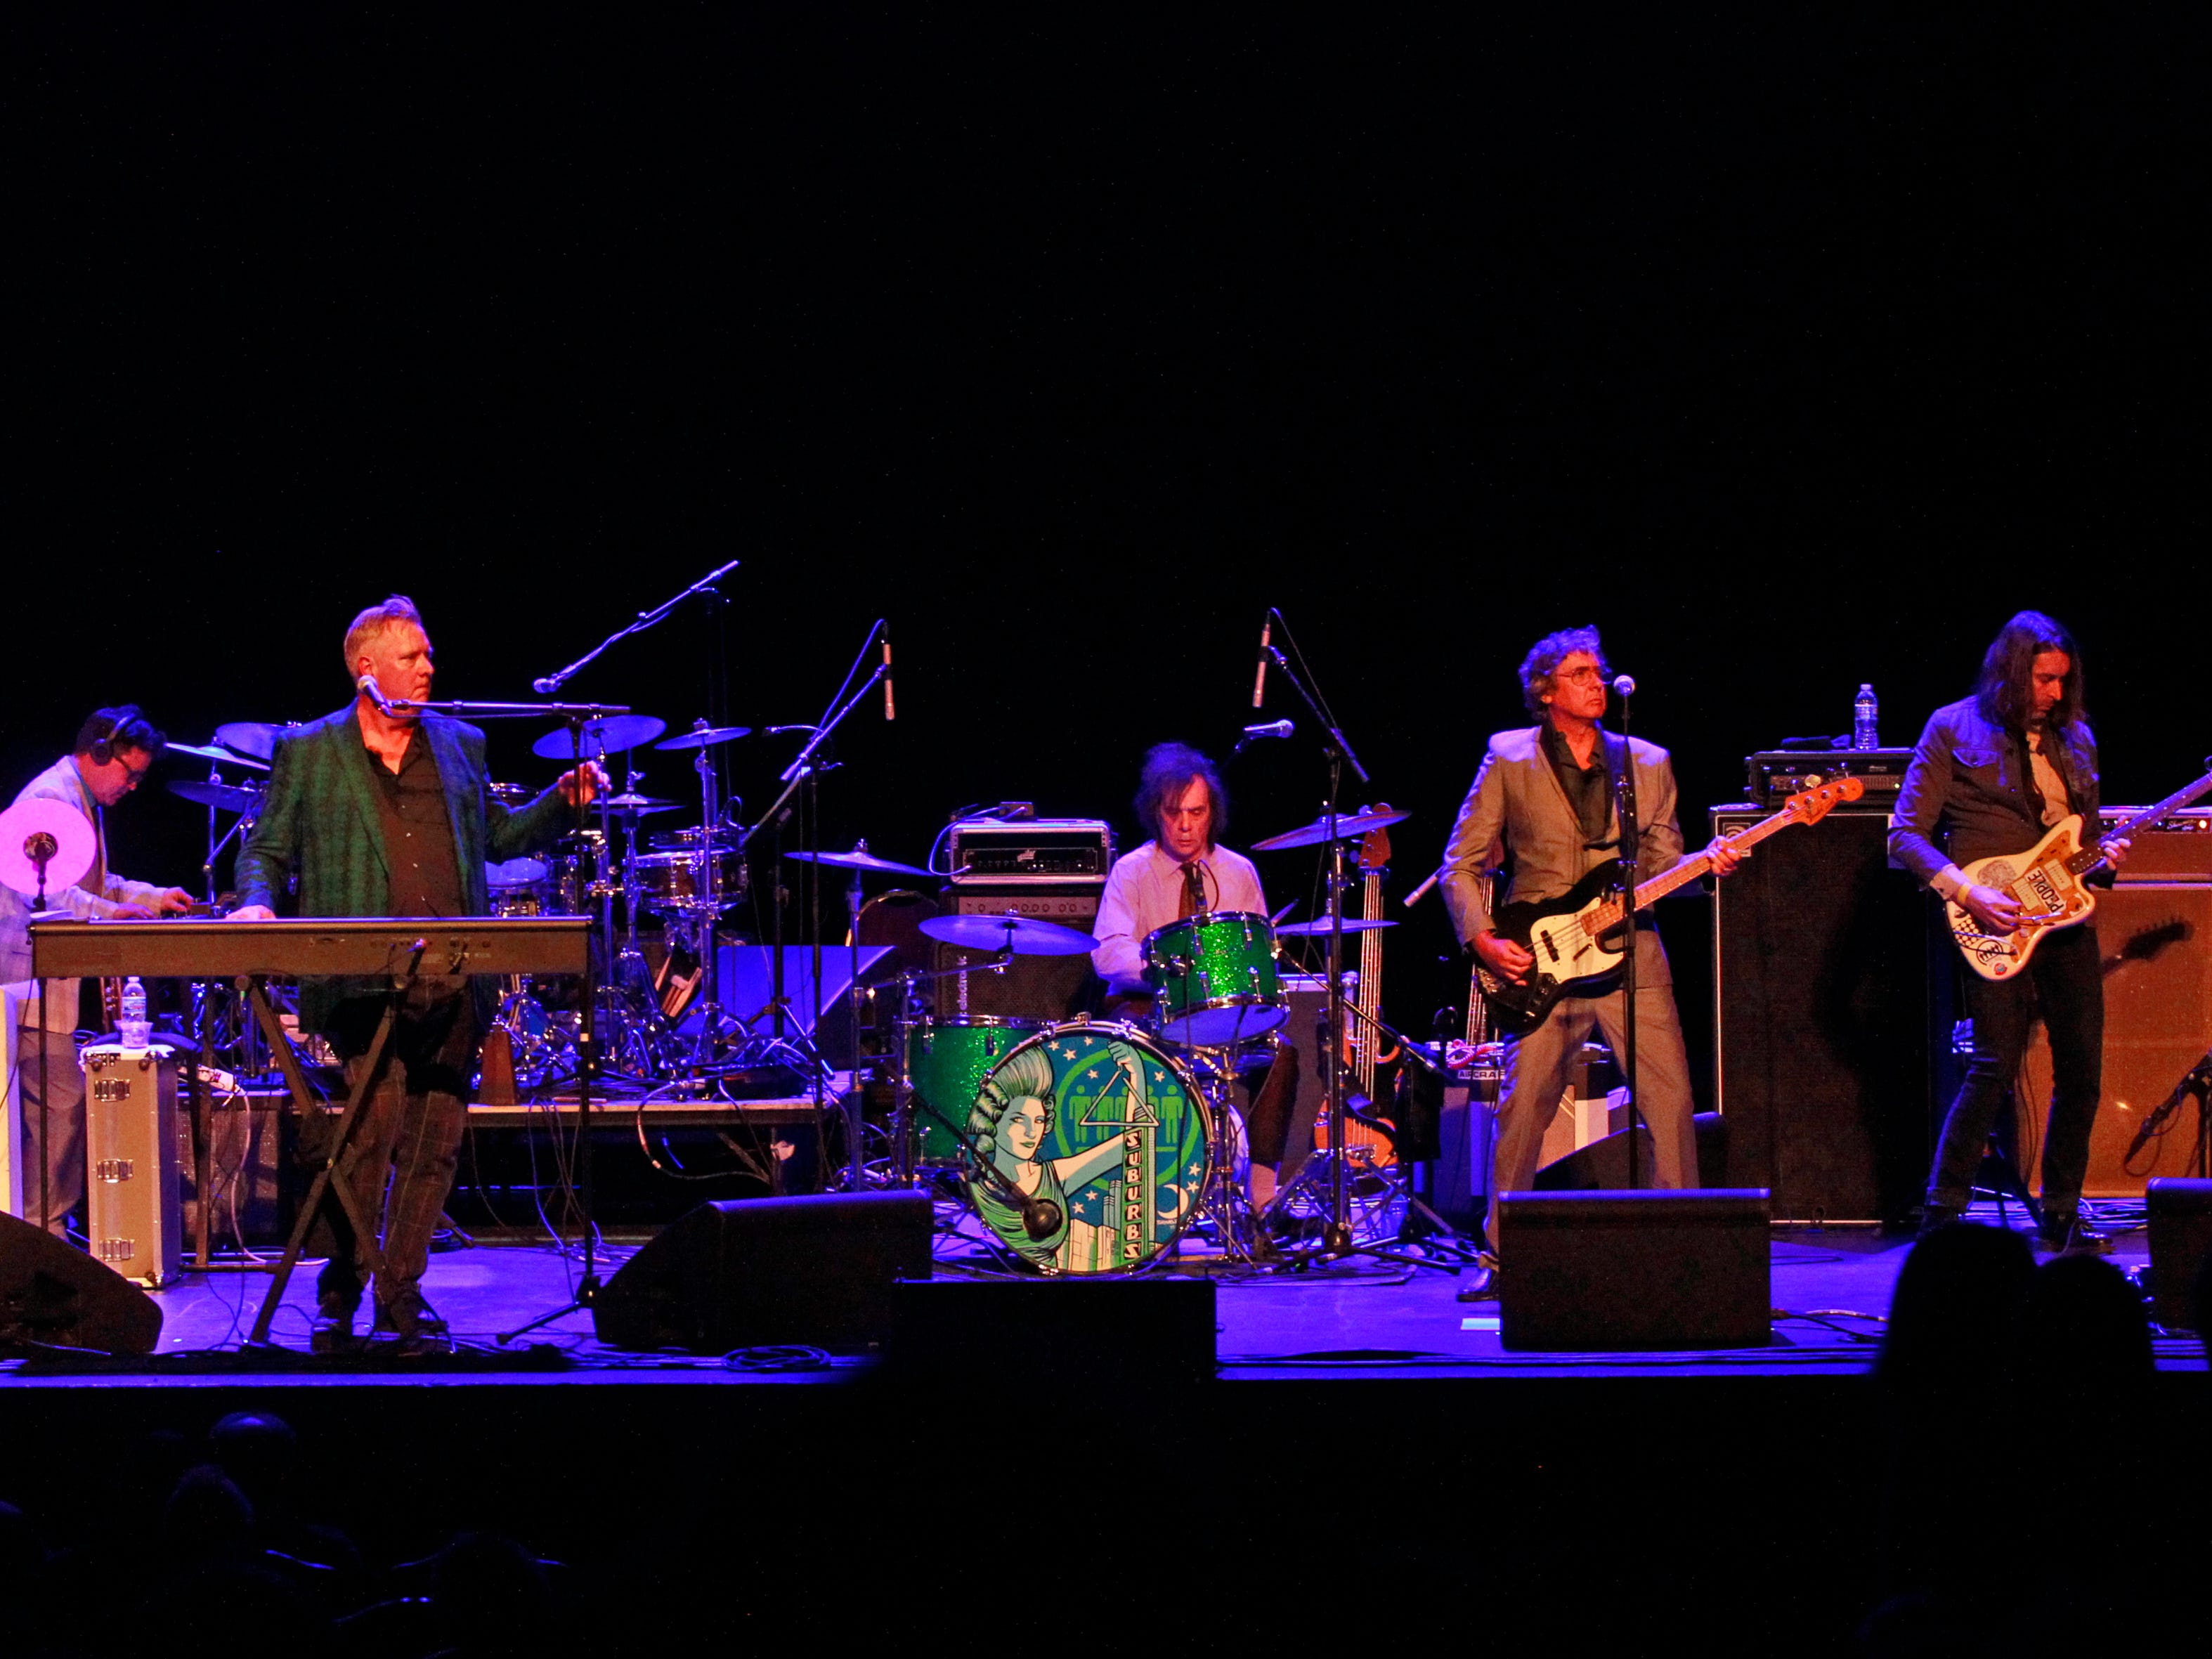 The Suburbs is the opening act for Mott The Hopple on Monday, April 1, 2019 at the Miller High Life Theatre in Milwaukee, Wi., Monday, April 1, 2019.